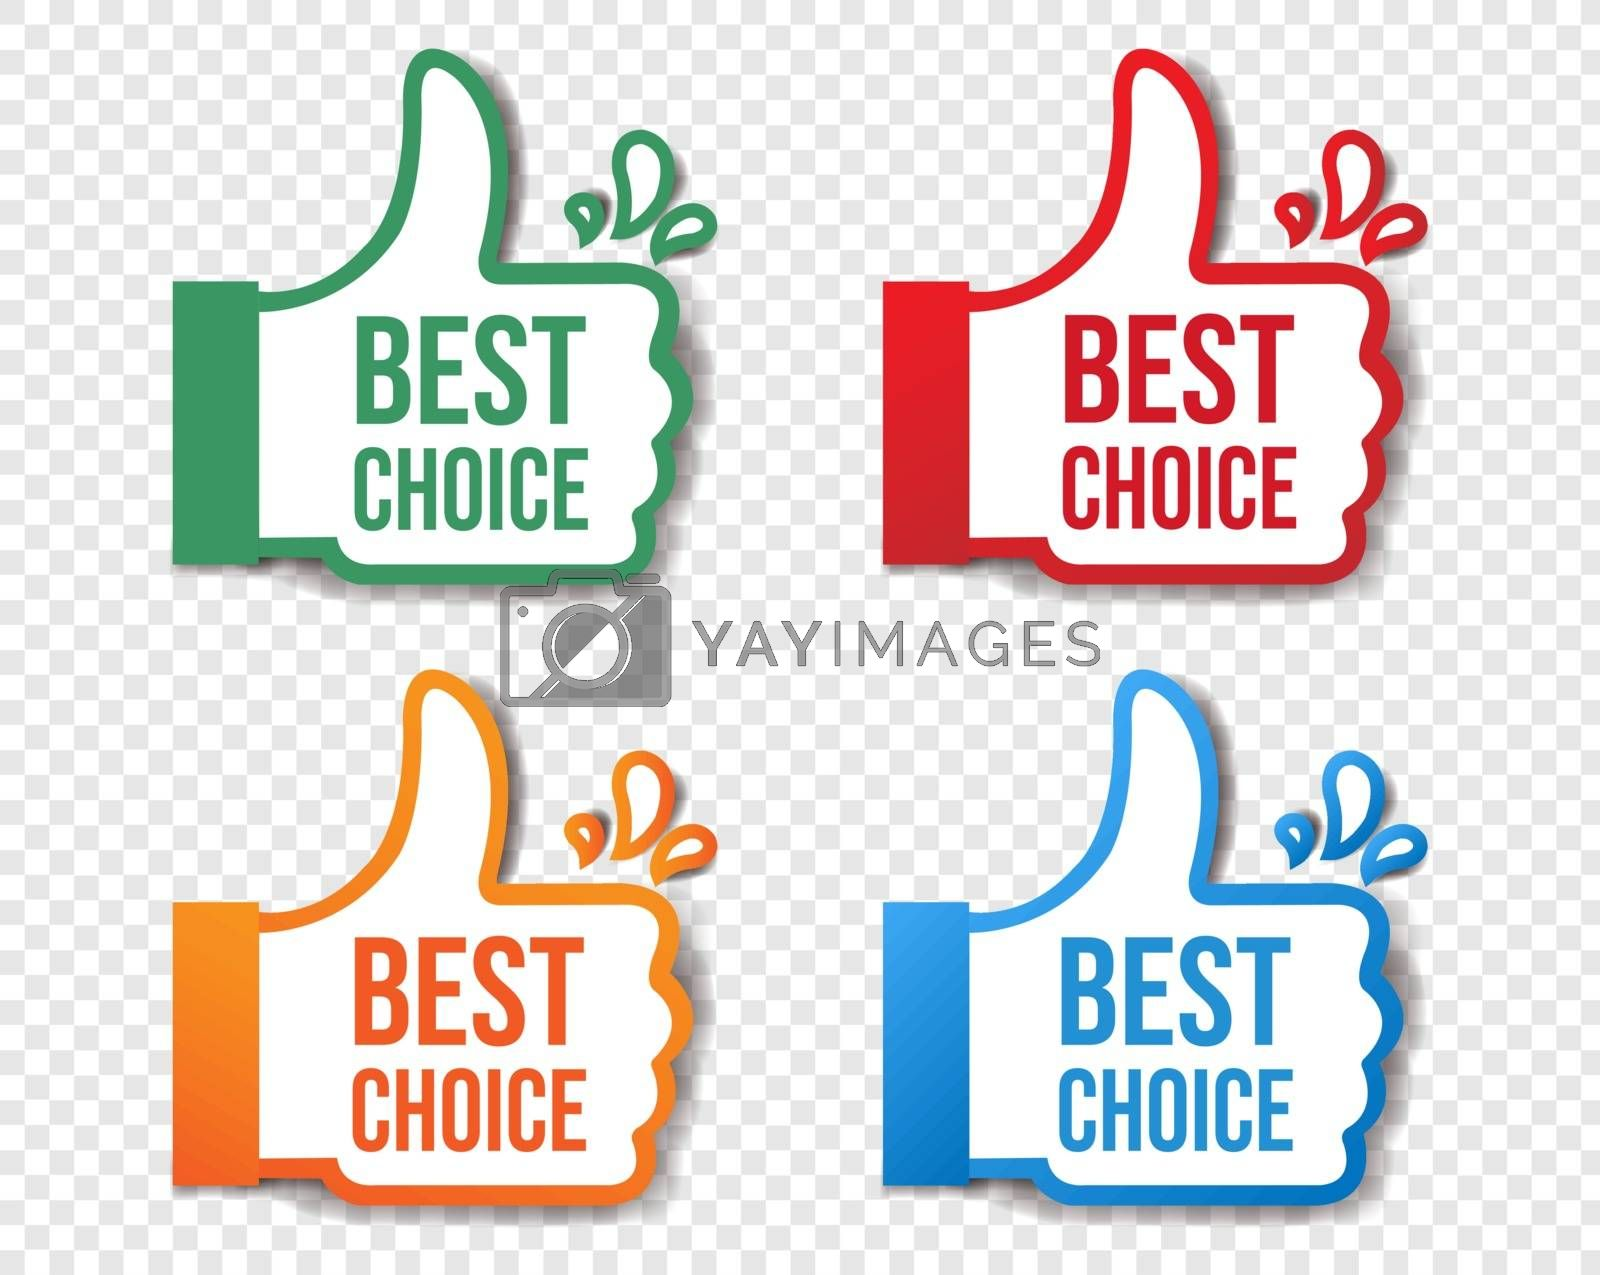 Best Choice Stickers Isolated Transparent Background With Gradient Mesh, Vector Illustration